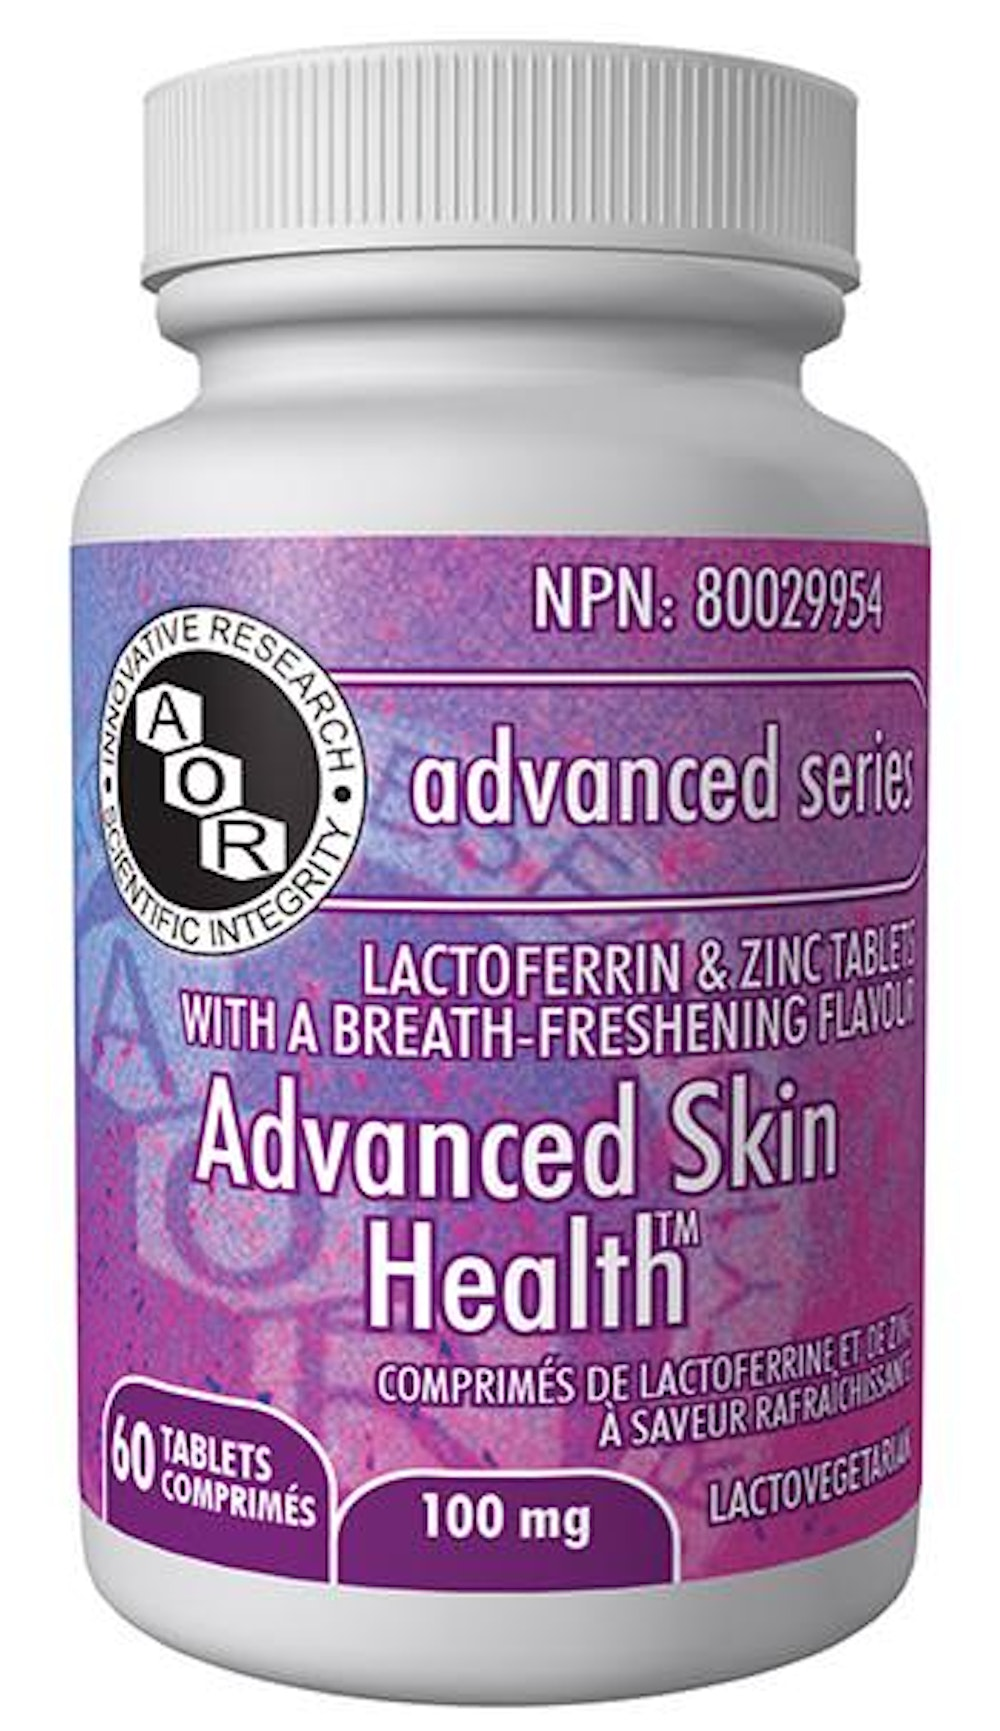 Advanced Skin Health